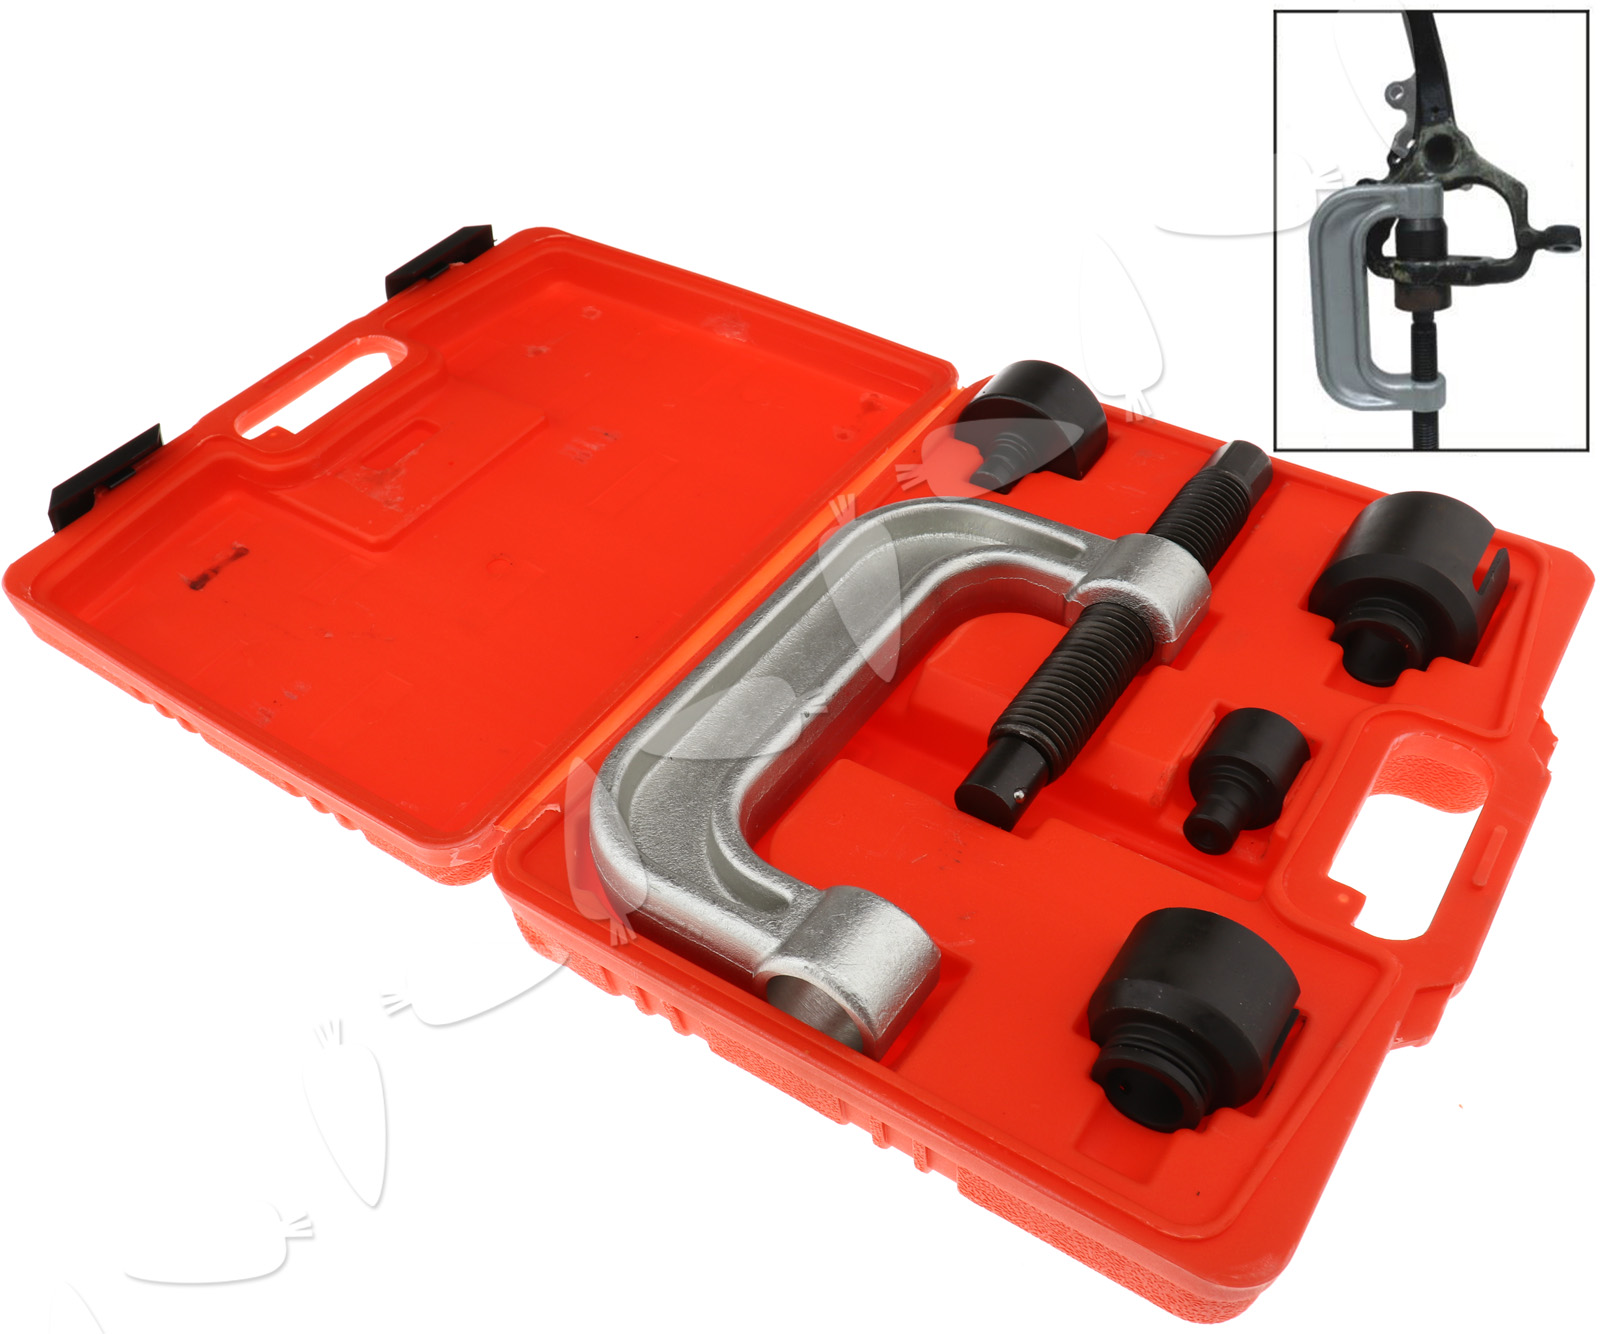 Ball joint press installer removal tool kit for mercedes for Mercedes benz tool kit